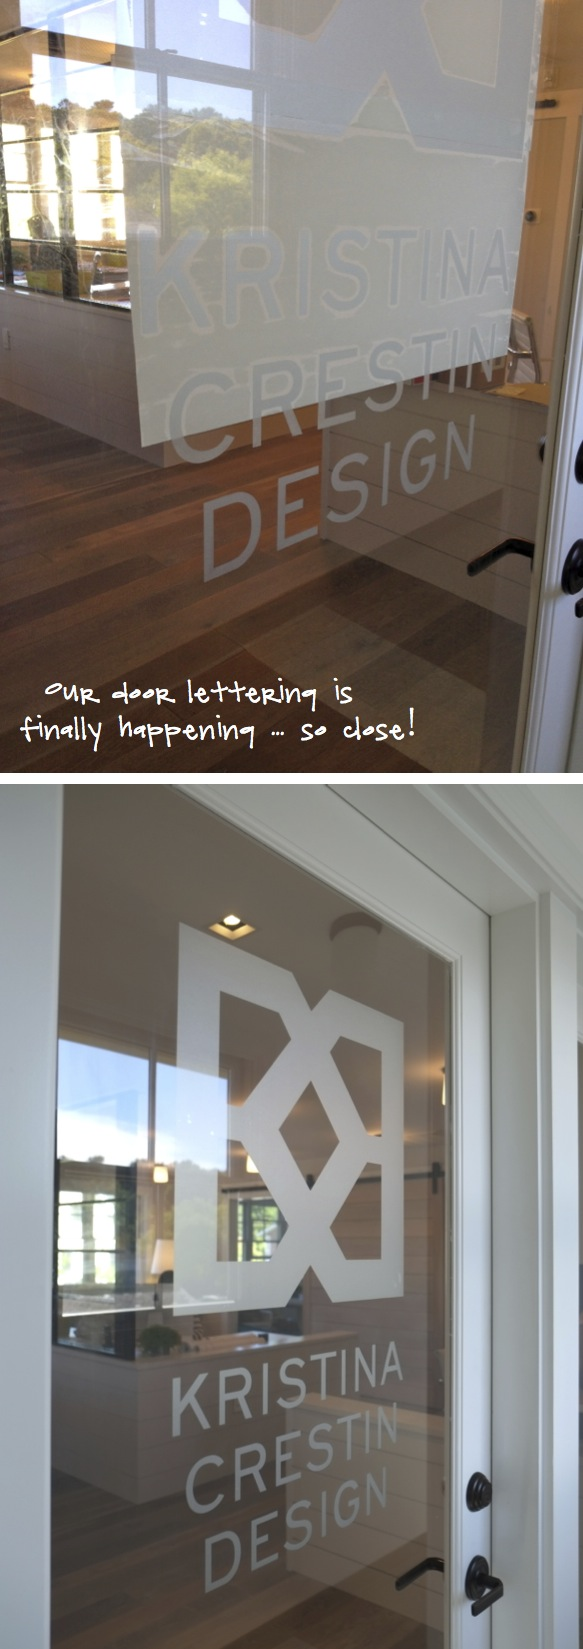 Kristina Crestin Design_Office door lettering A